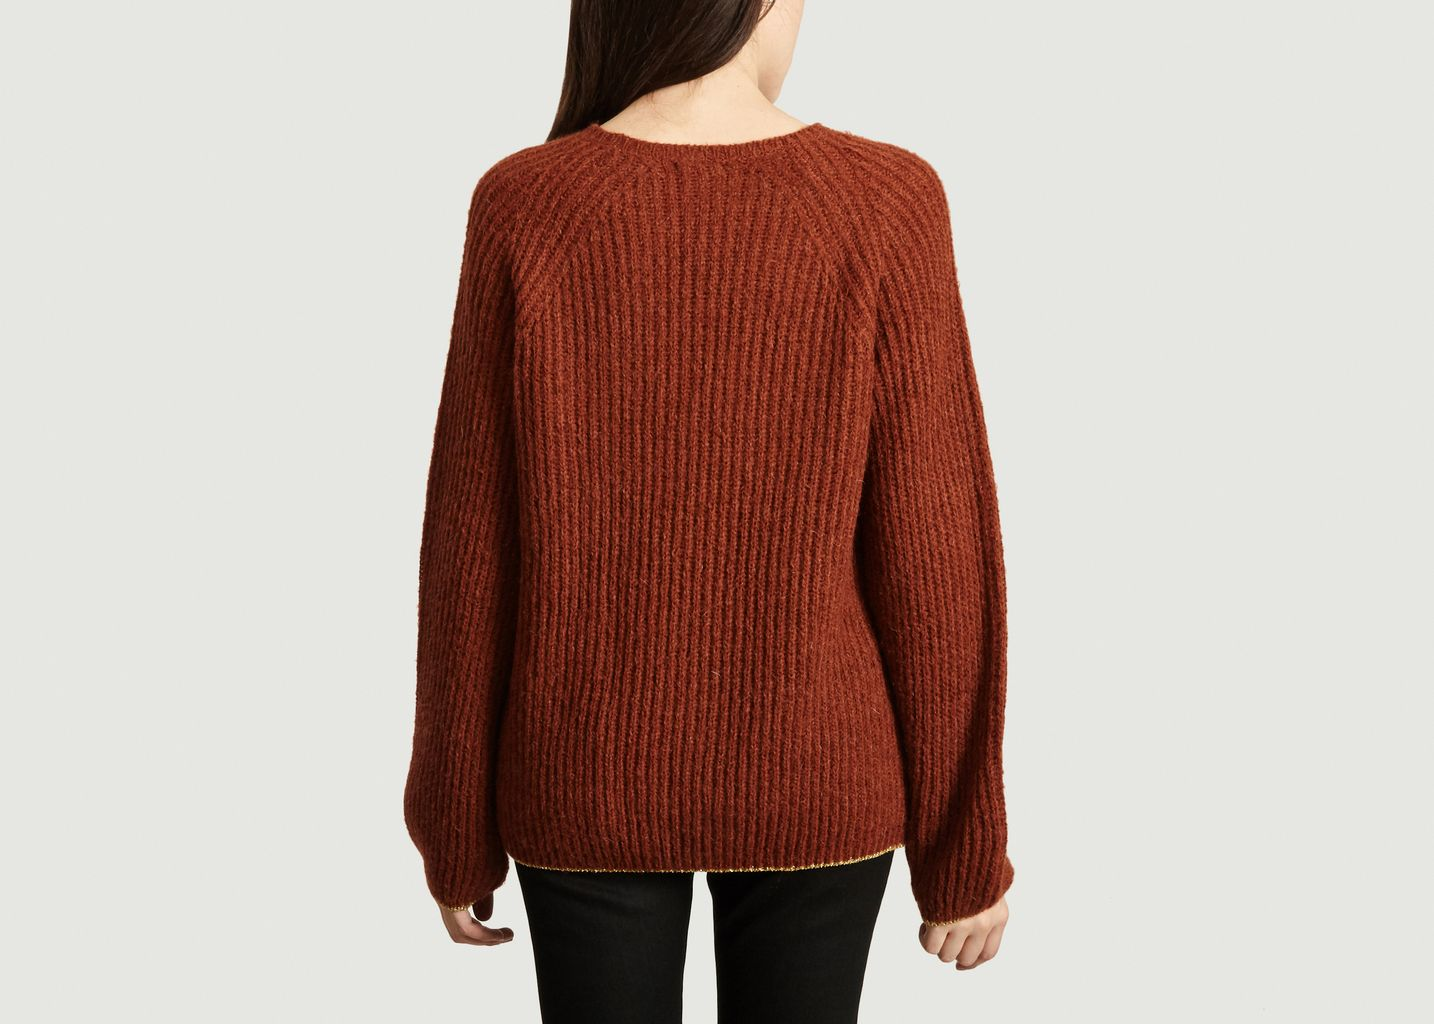 Pull Neige - Tinsels